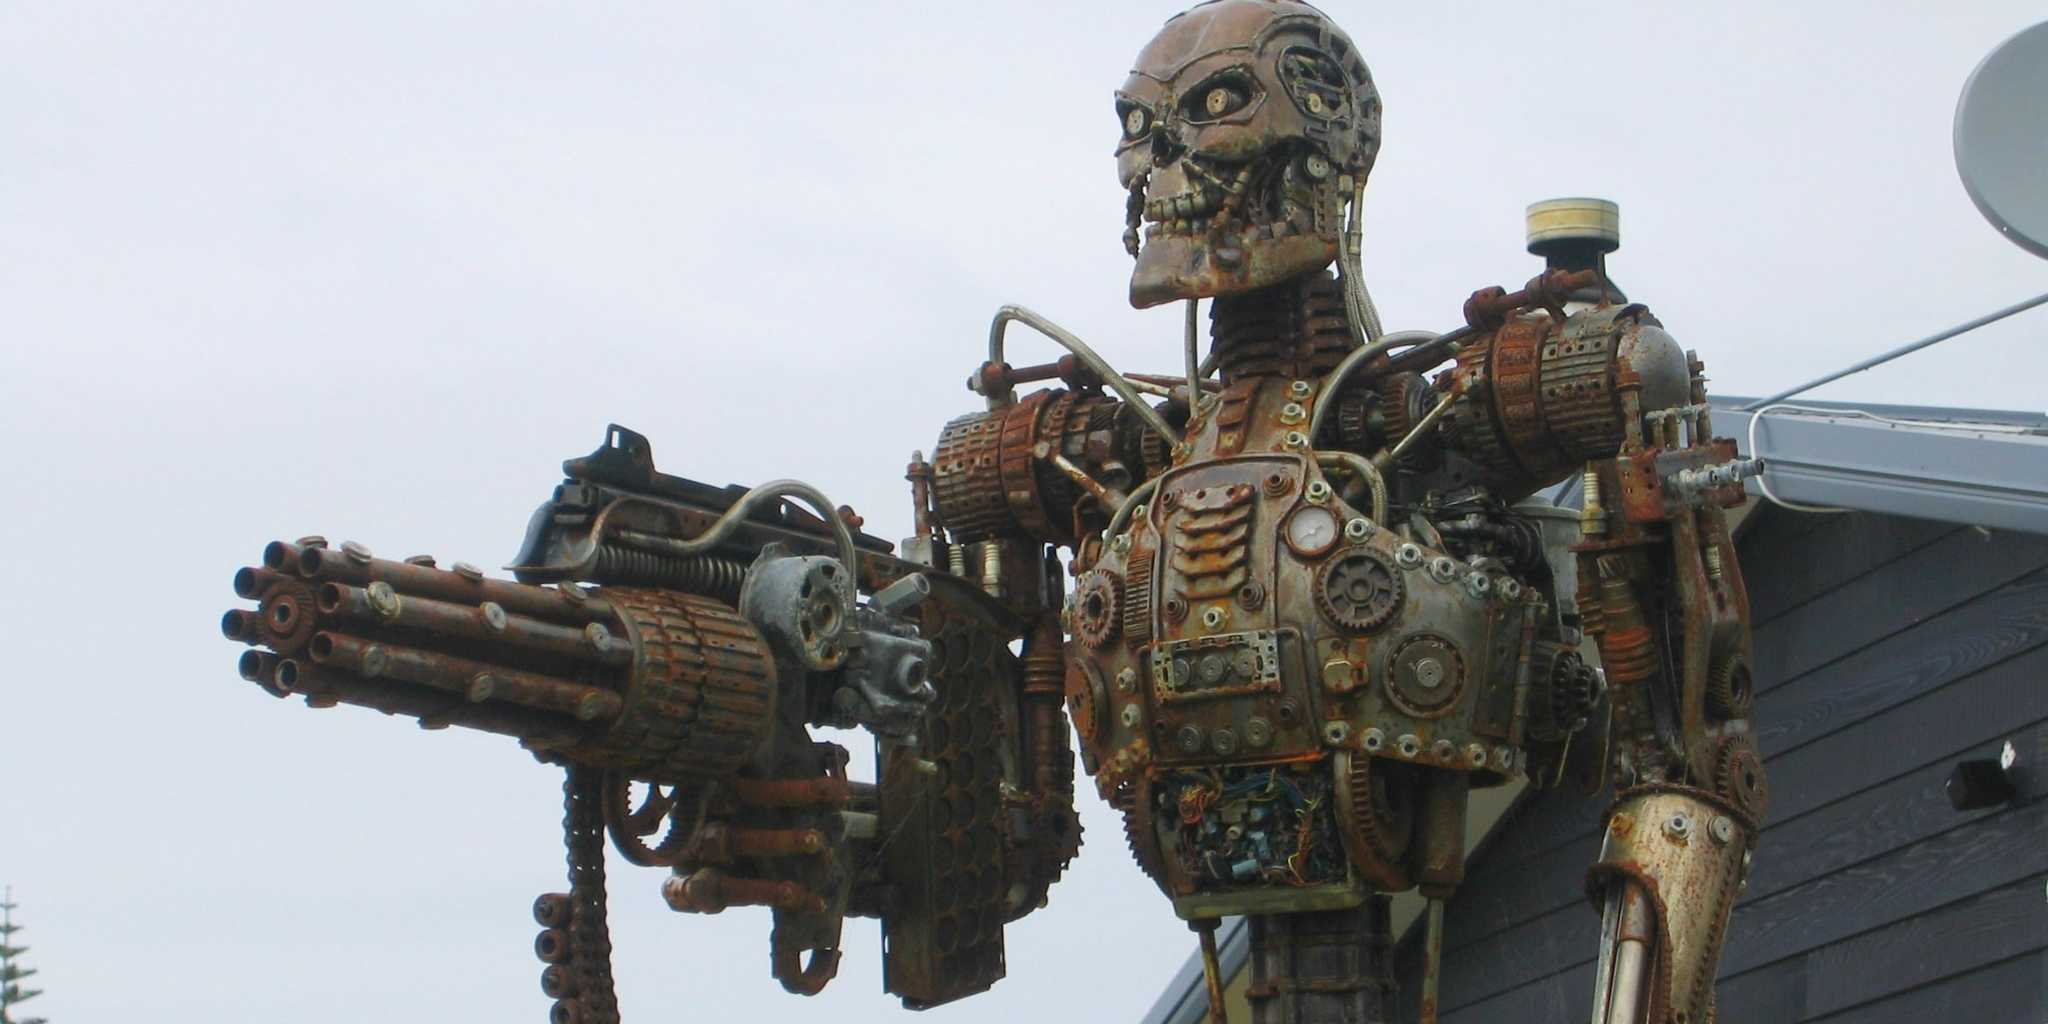 The robots are considered a deadly threat to countries